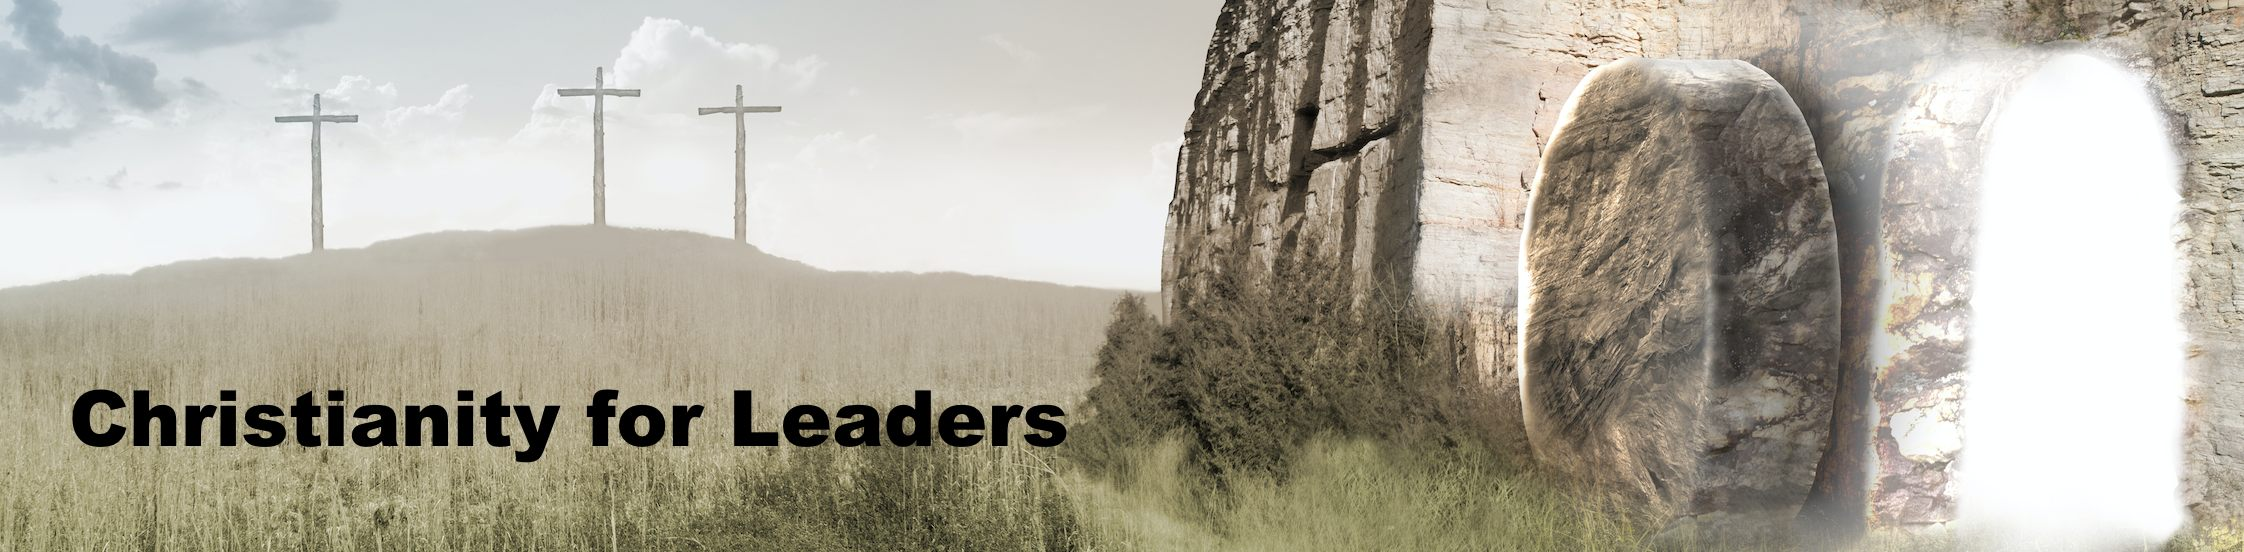 Christianity for Leaders